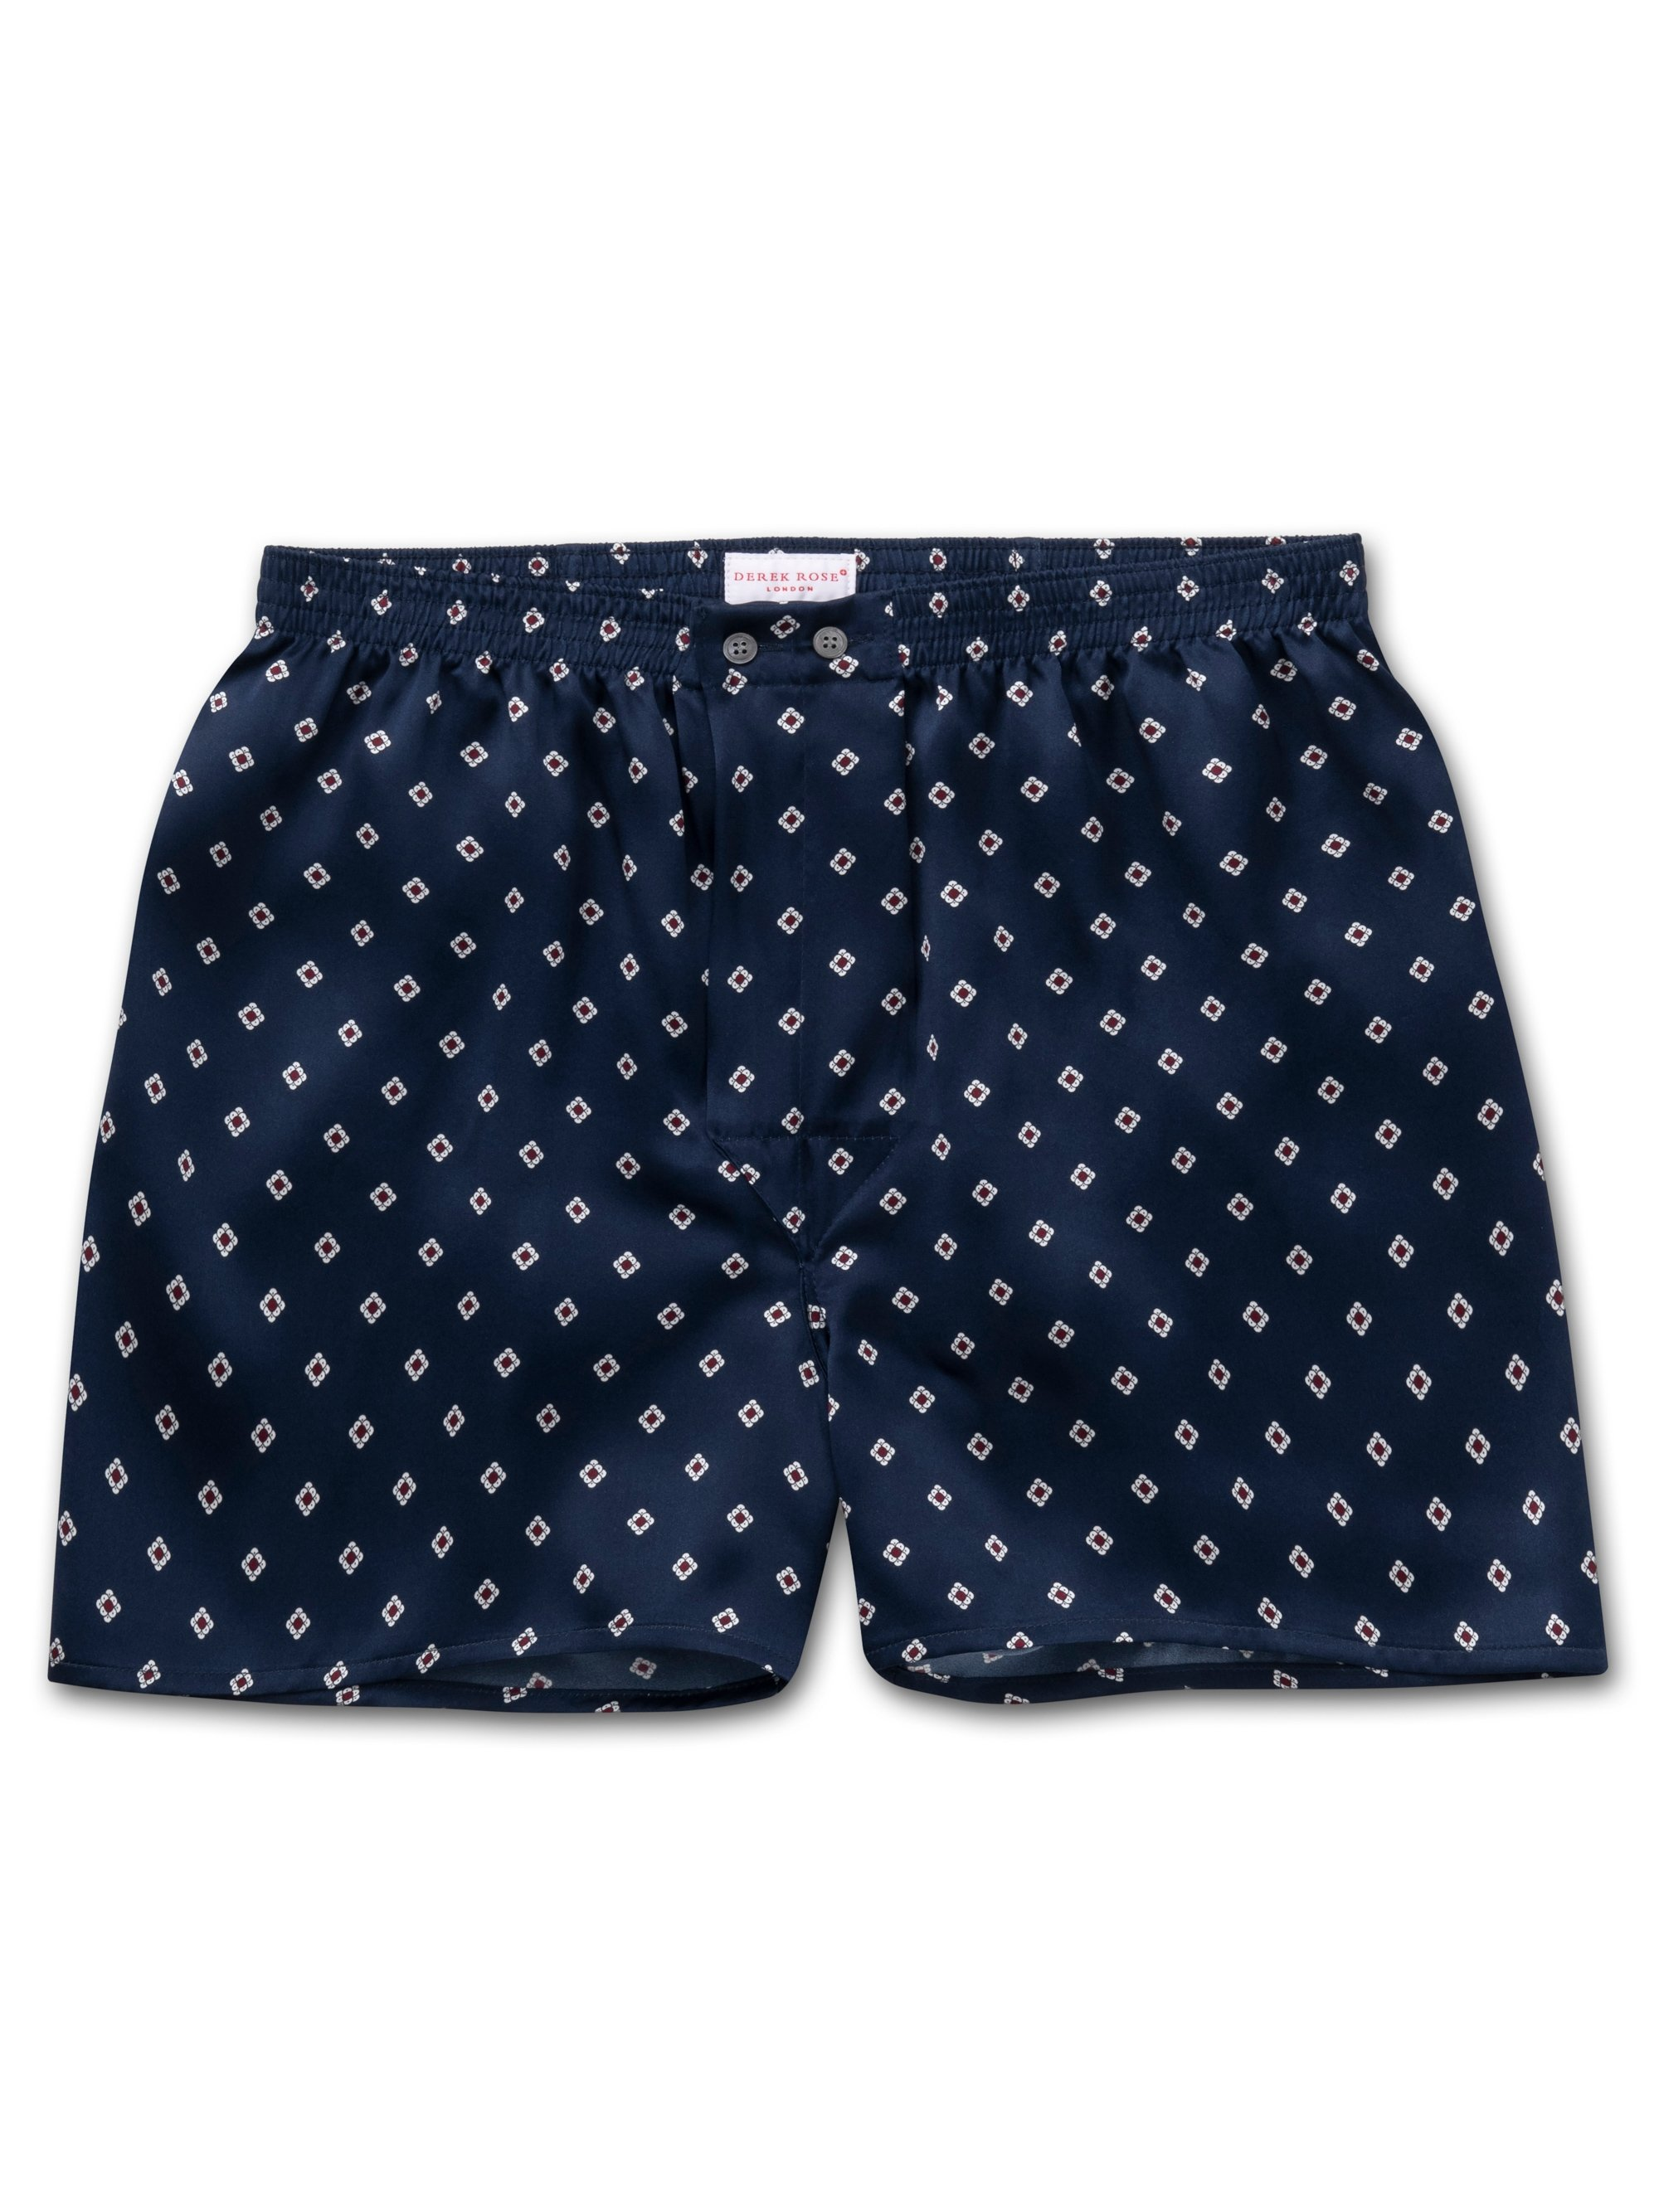 Men's Classic Fit Boxer Shorts Brindisi 58 Pure Silk Satin Navy